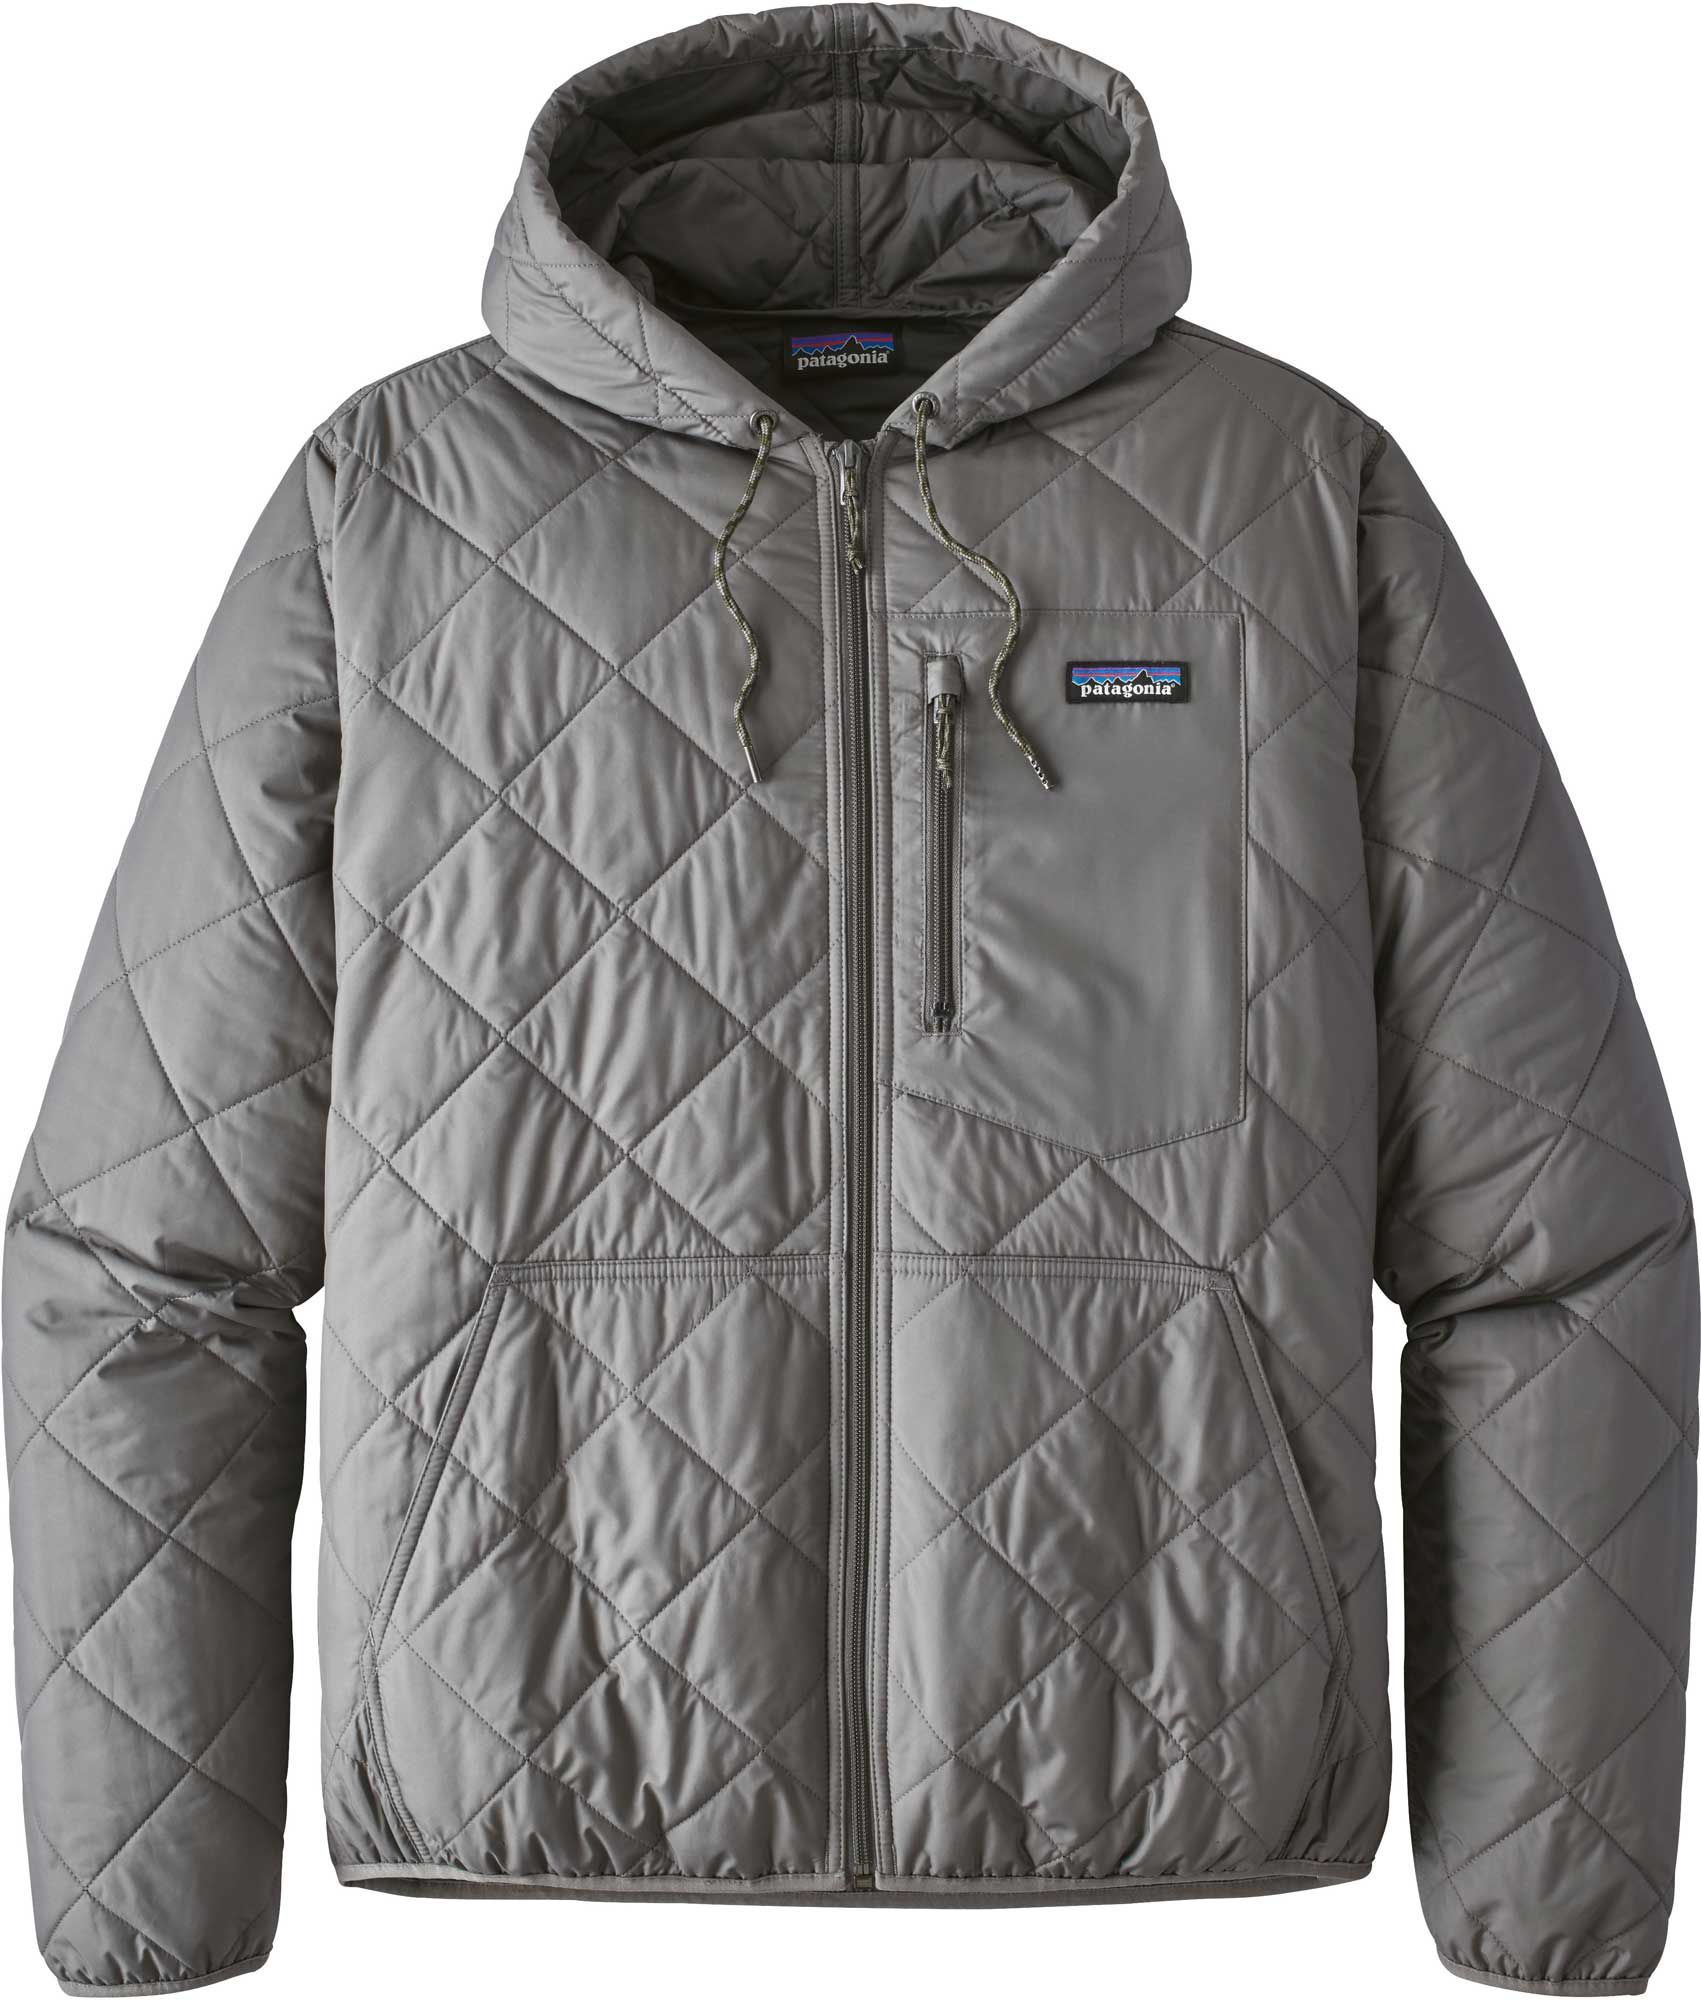 Patagonia Men S Diamond Quilted Bomber Hoodie Size Xl